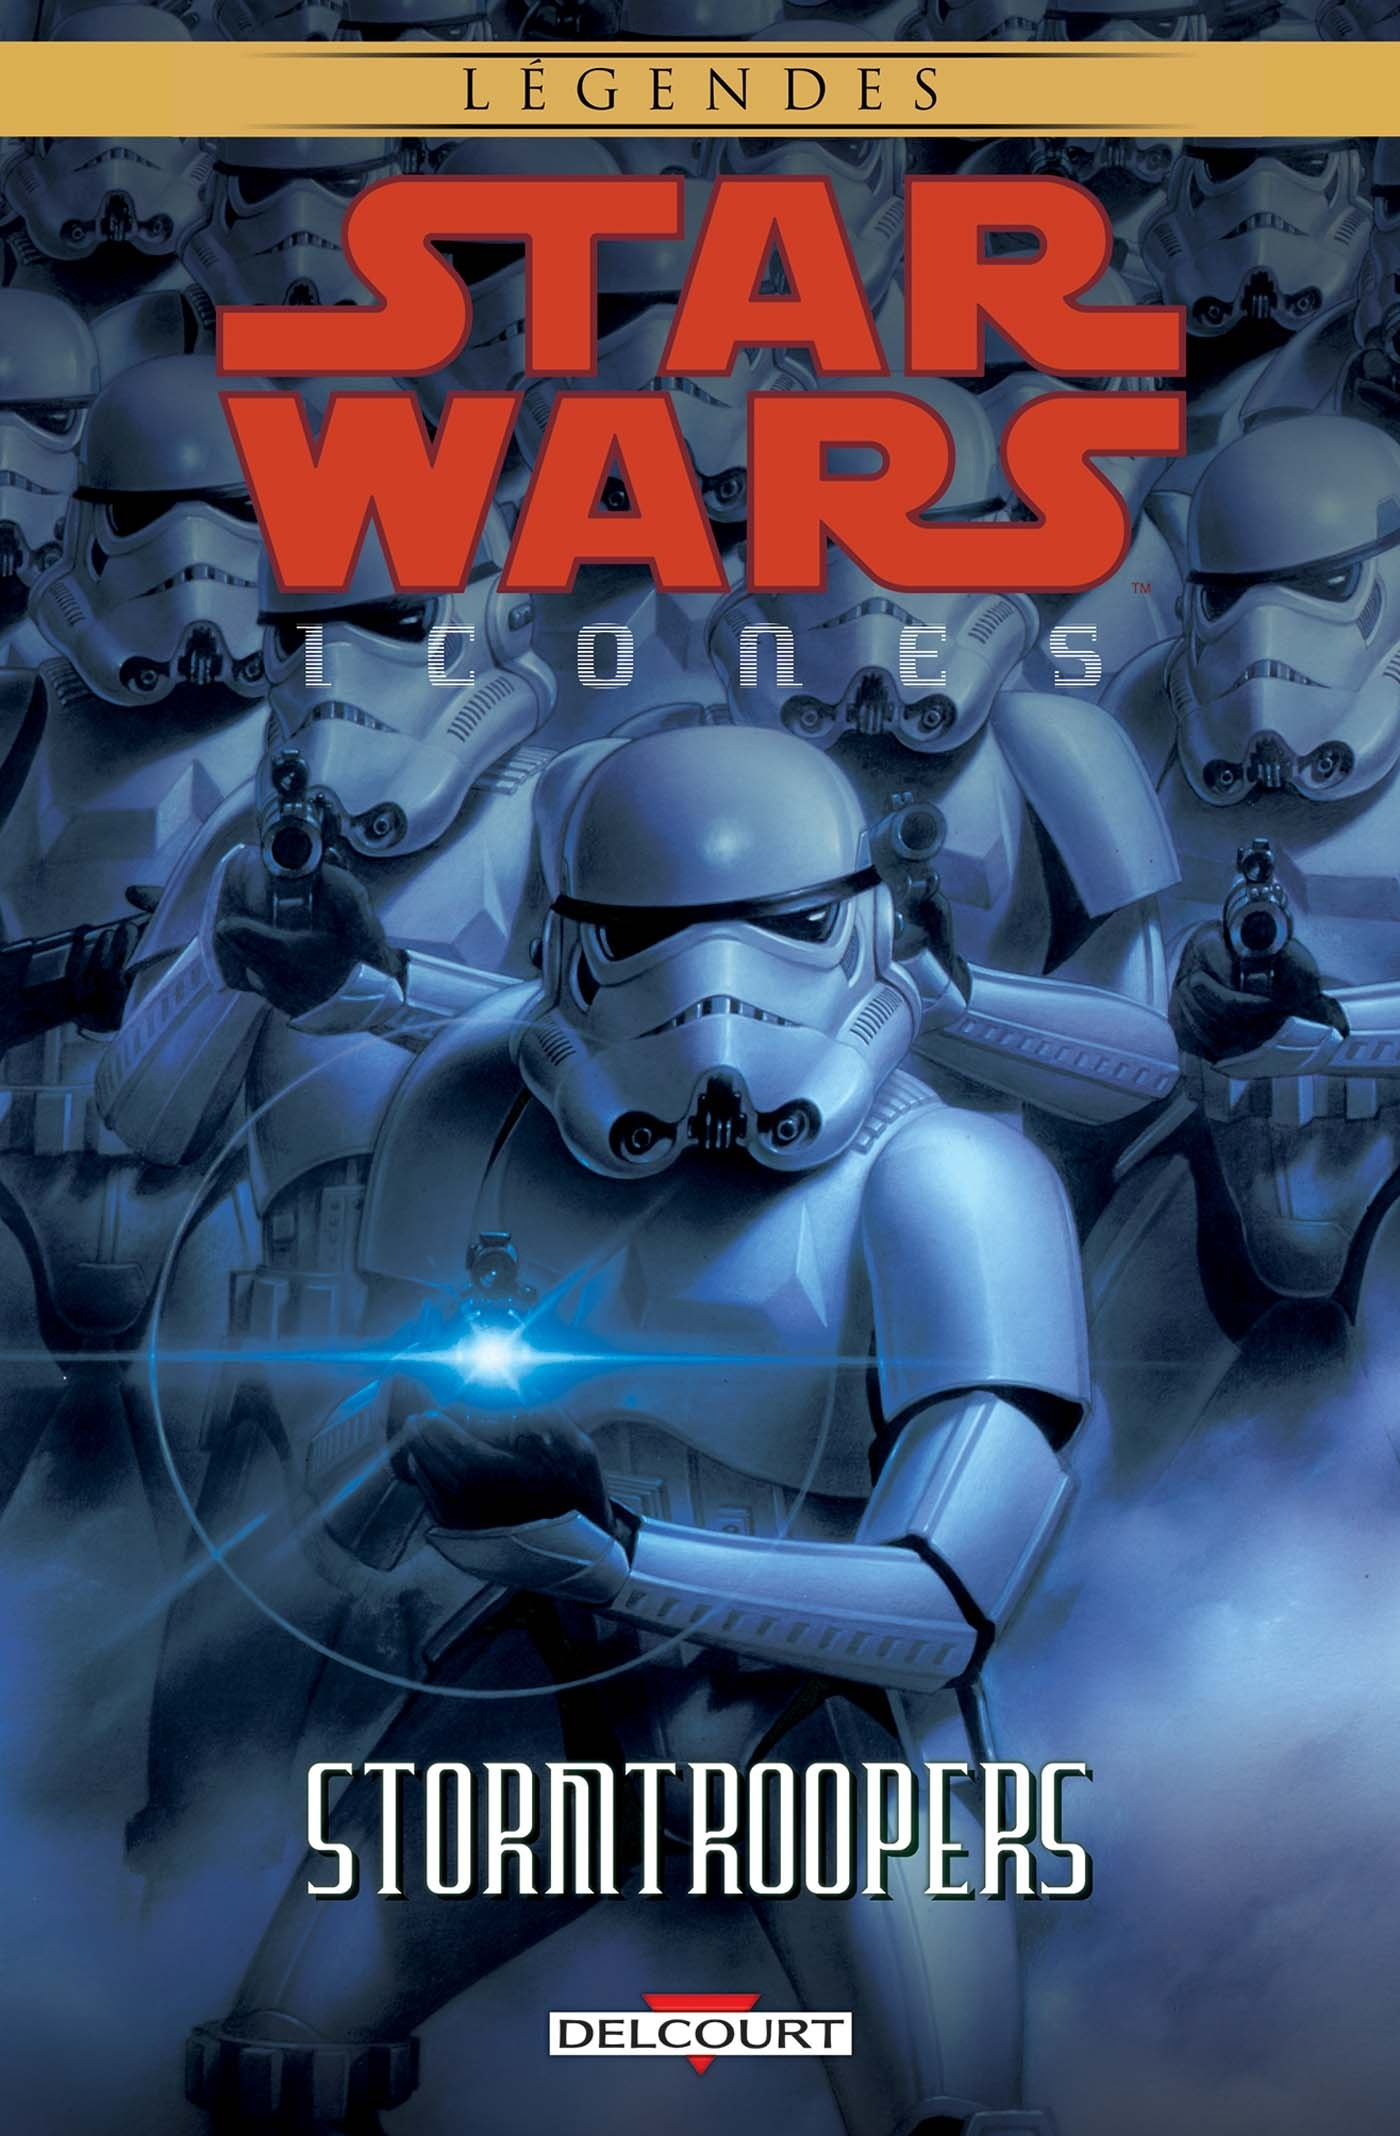 STAR WARS - ICONES T06. STORMTROOPERS